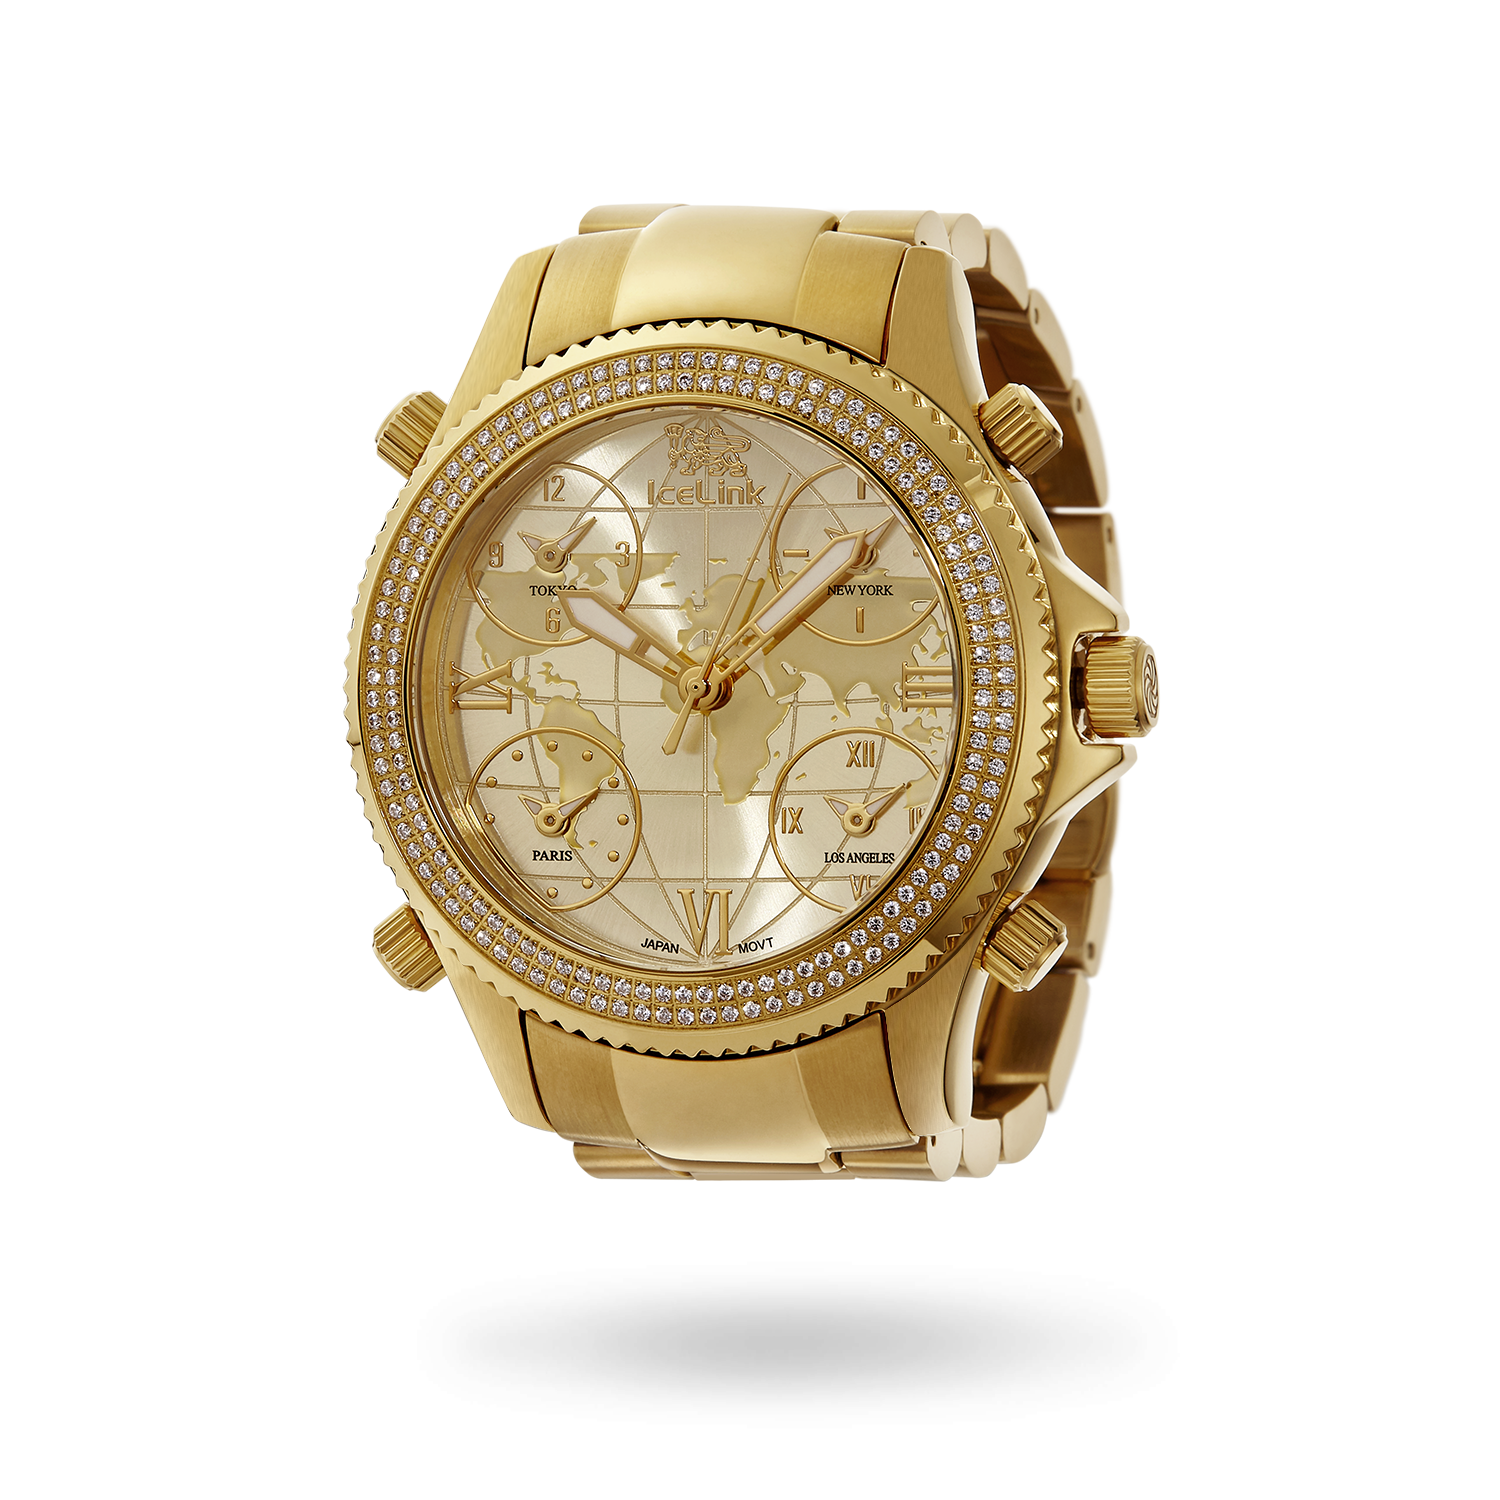 Marco Polo Gold Watch